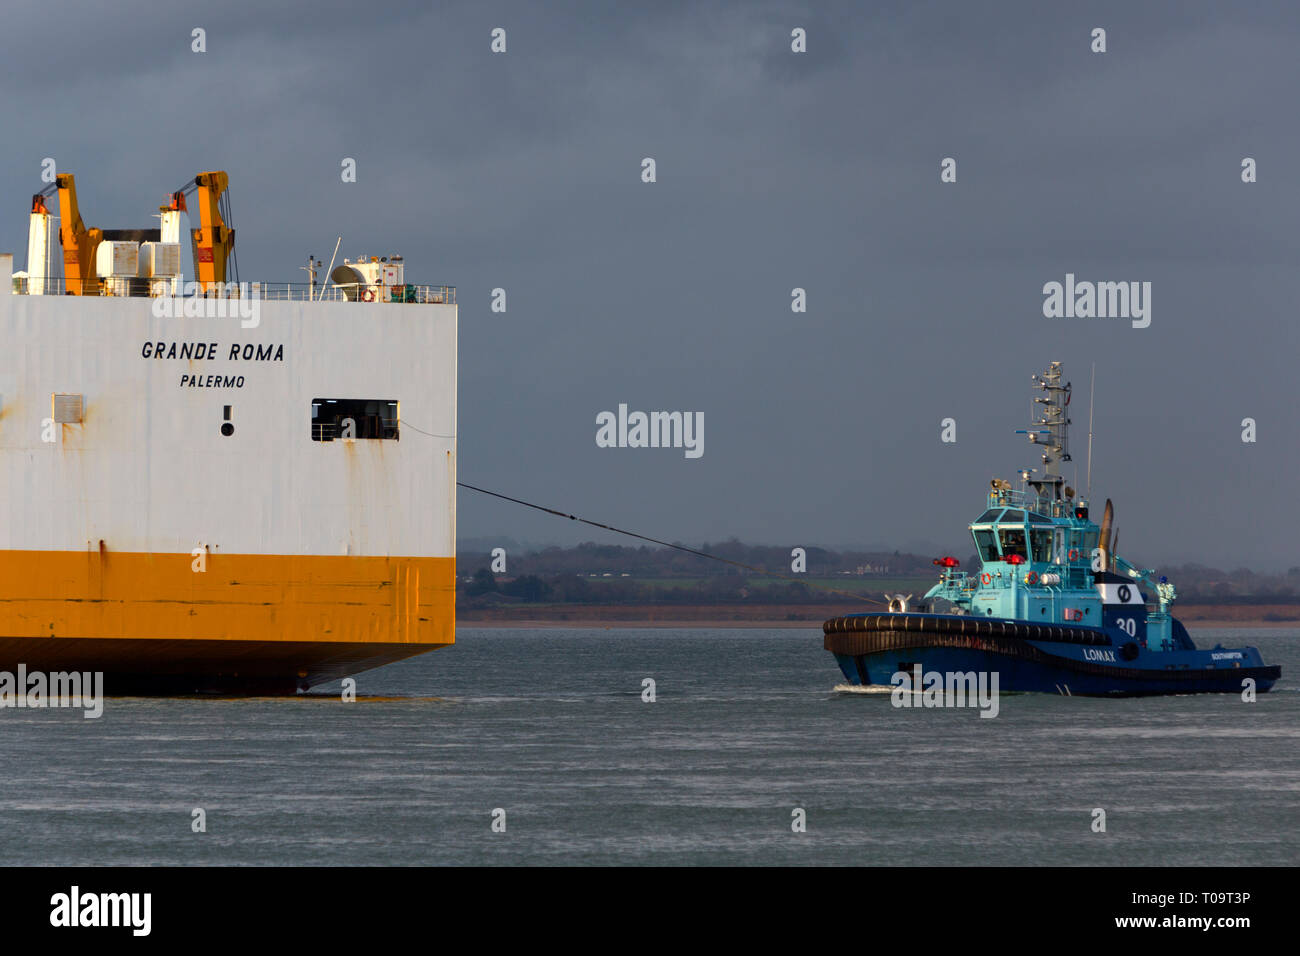 Being towed by tugs, voith,broken down,Car,Grimaldi Lines,Carrier,Grande Roma,Palermo, The Solent,Cowes, to,Southampton,Hampshire,Isle of Wight, - Stock Image